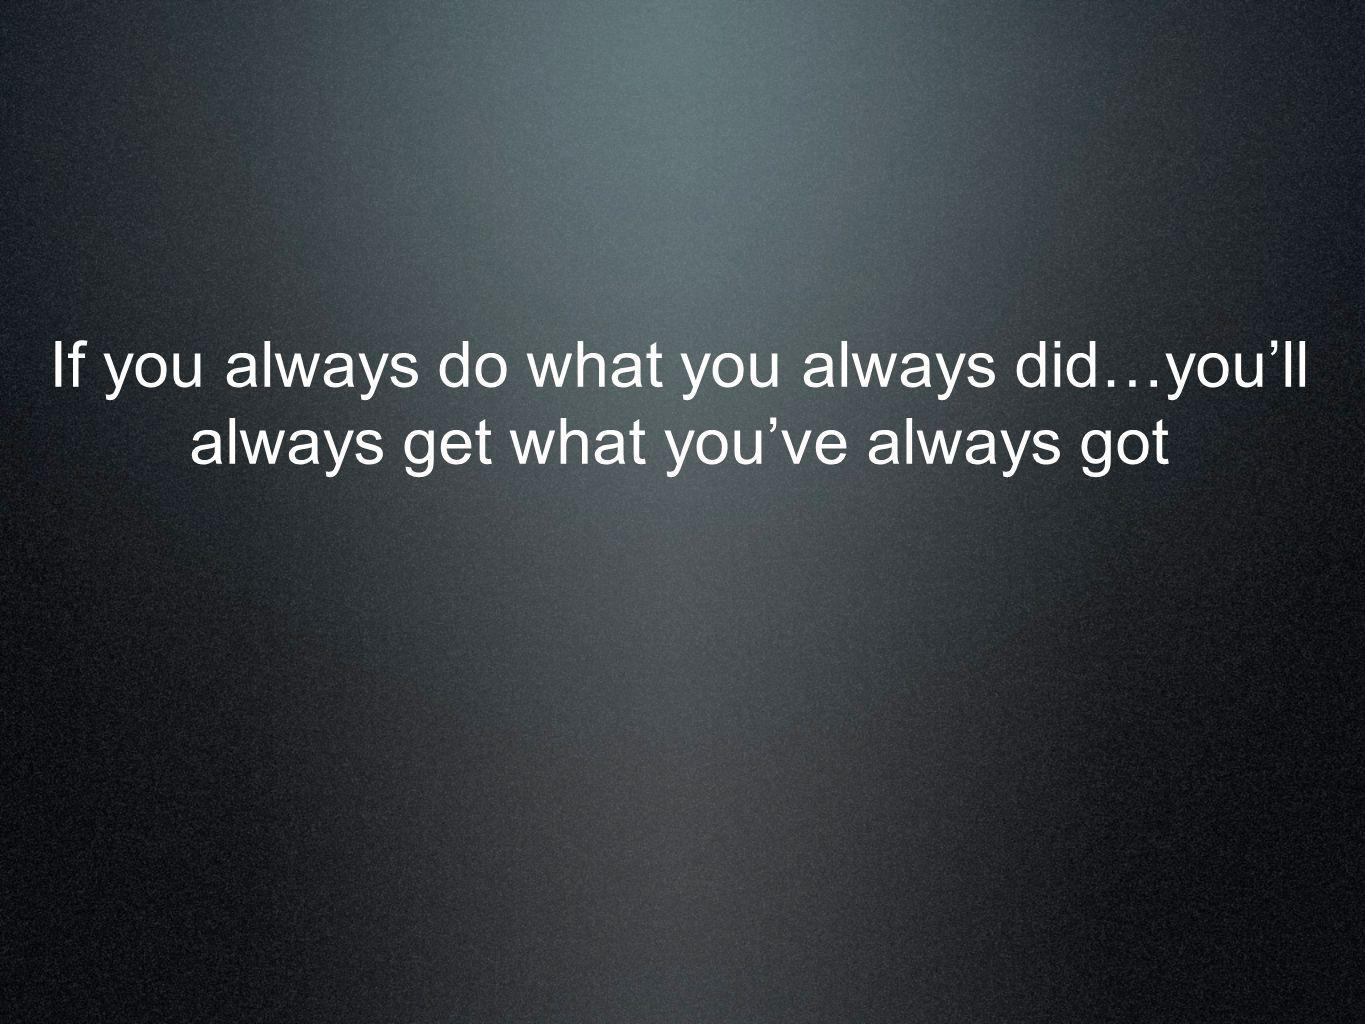 If you always do what you always did…you'll always get what you've always got